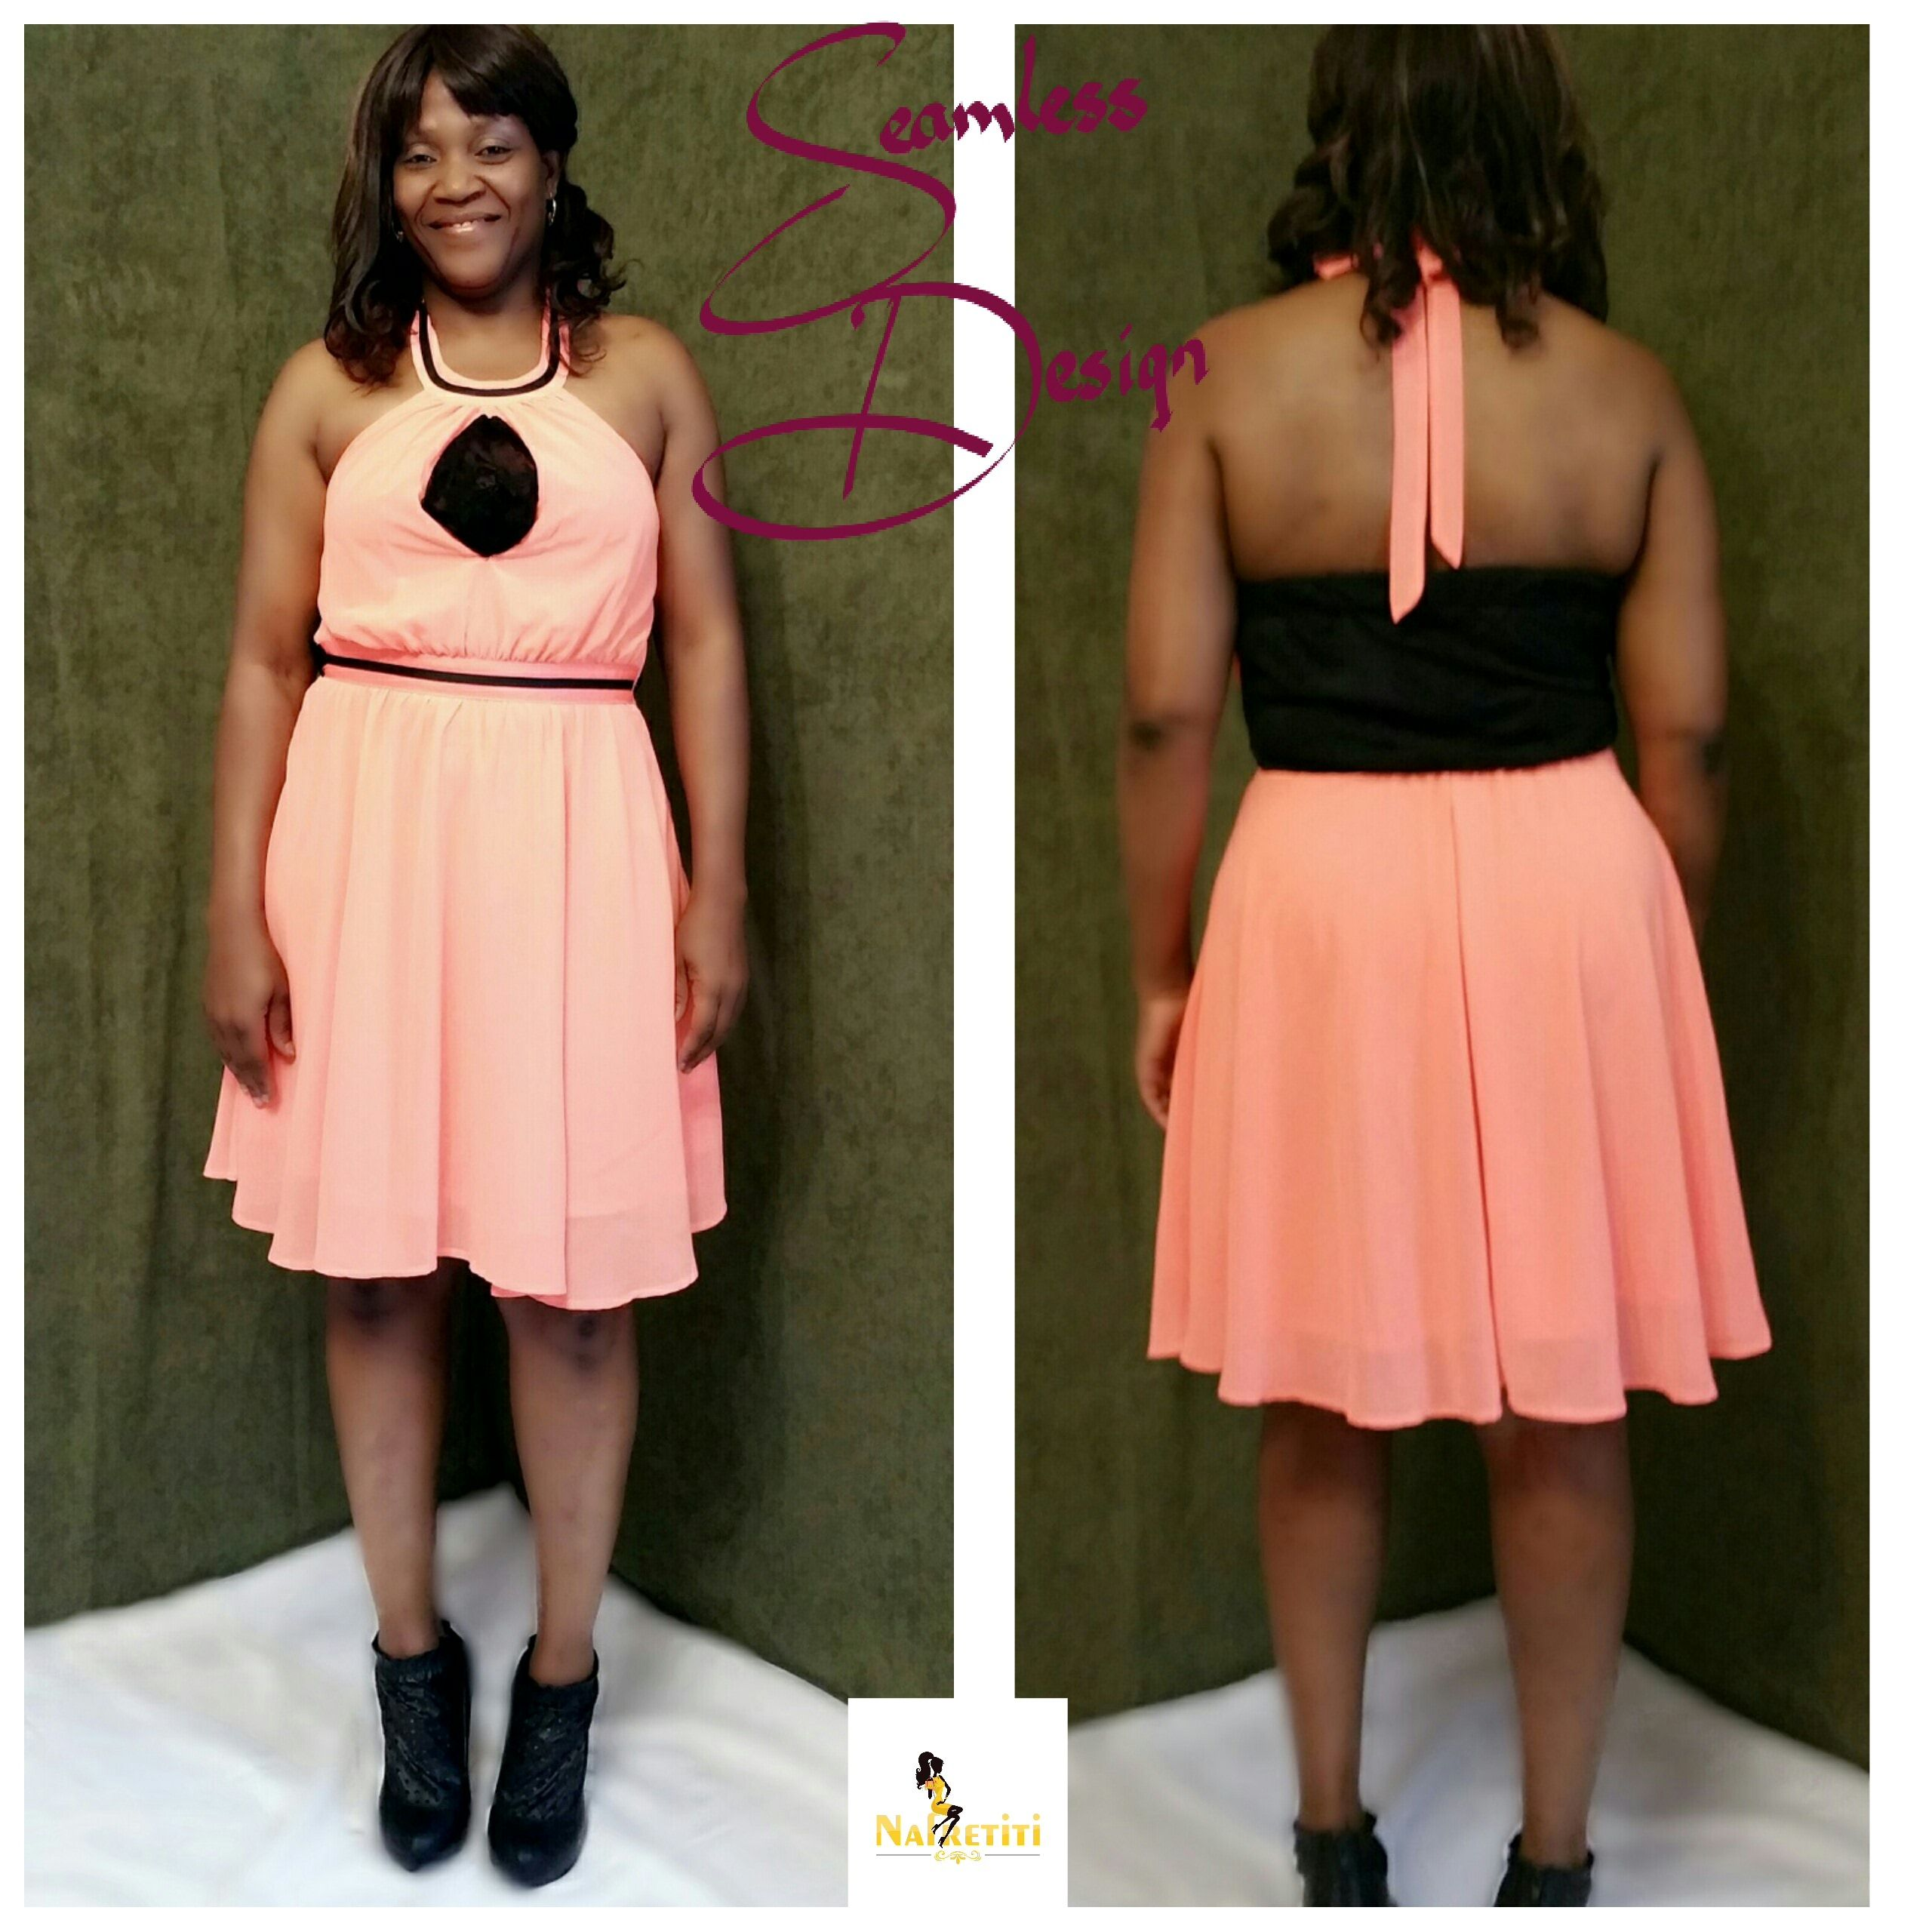 Coral and black Holter top dress.    Fabric: Georgette and Lace    Size: 10 | Shop this product here: http://spreesy.com/Nafretiti/27 | Shop all of our products at http://spreesy.com/Nafretiti    | Pinterest selling powered by Spreesy.com